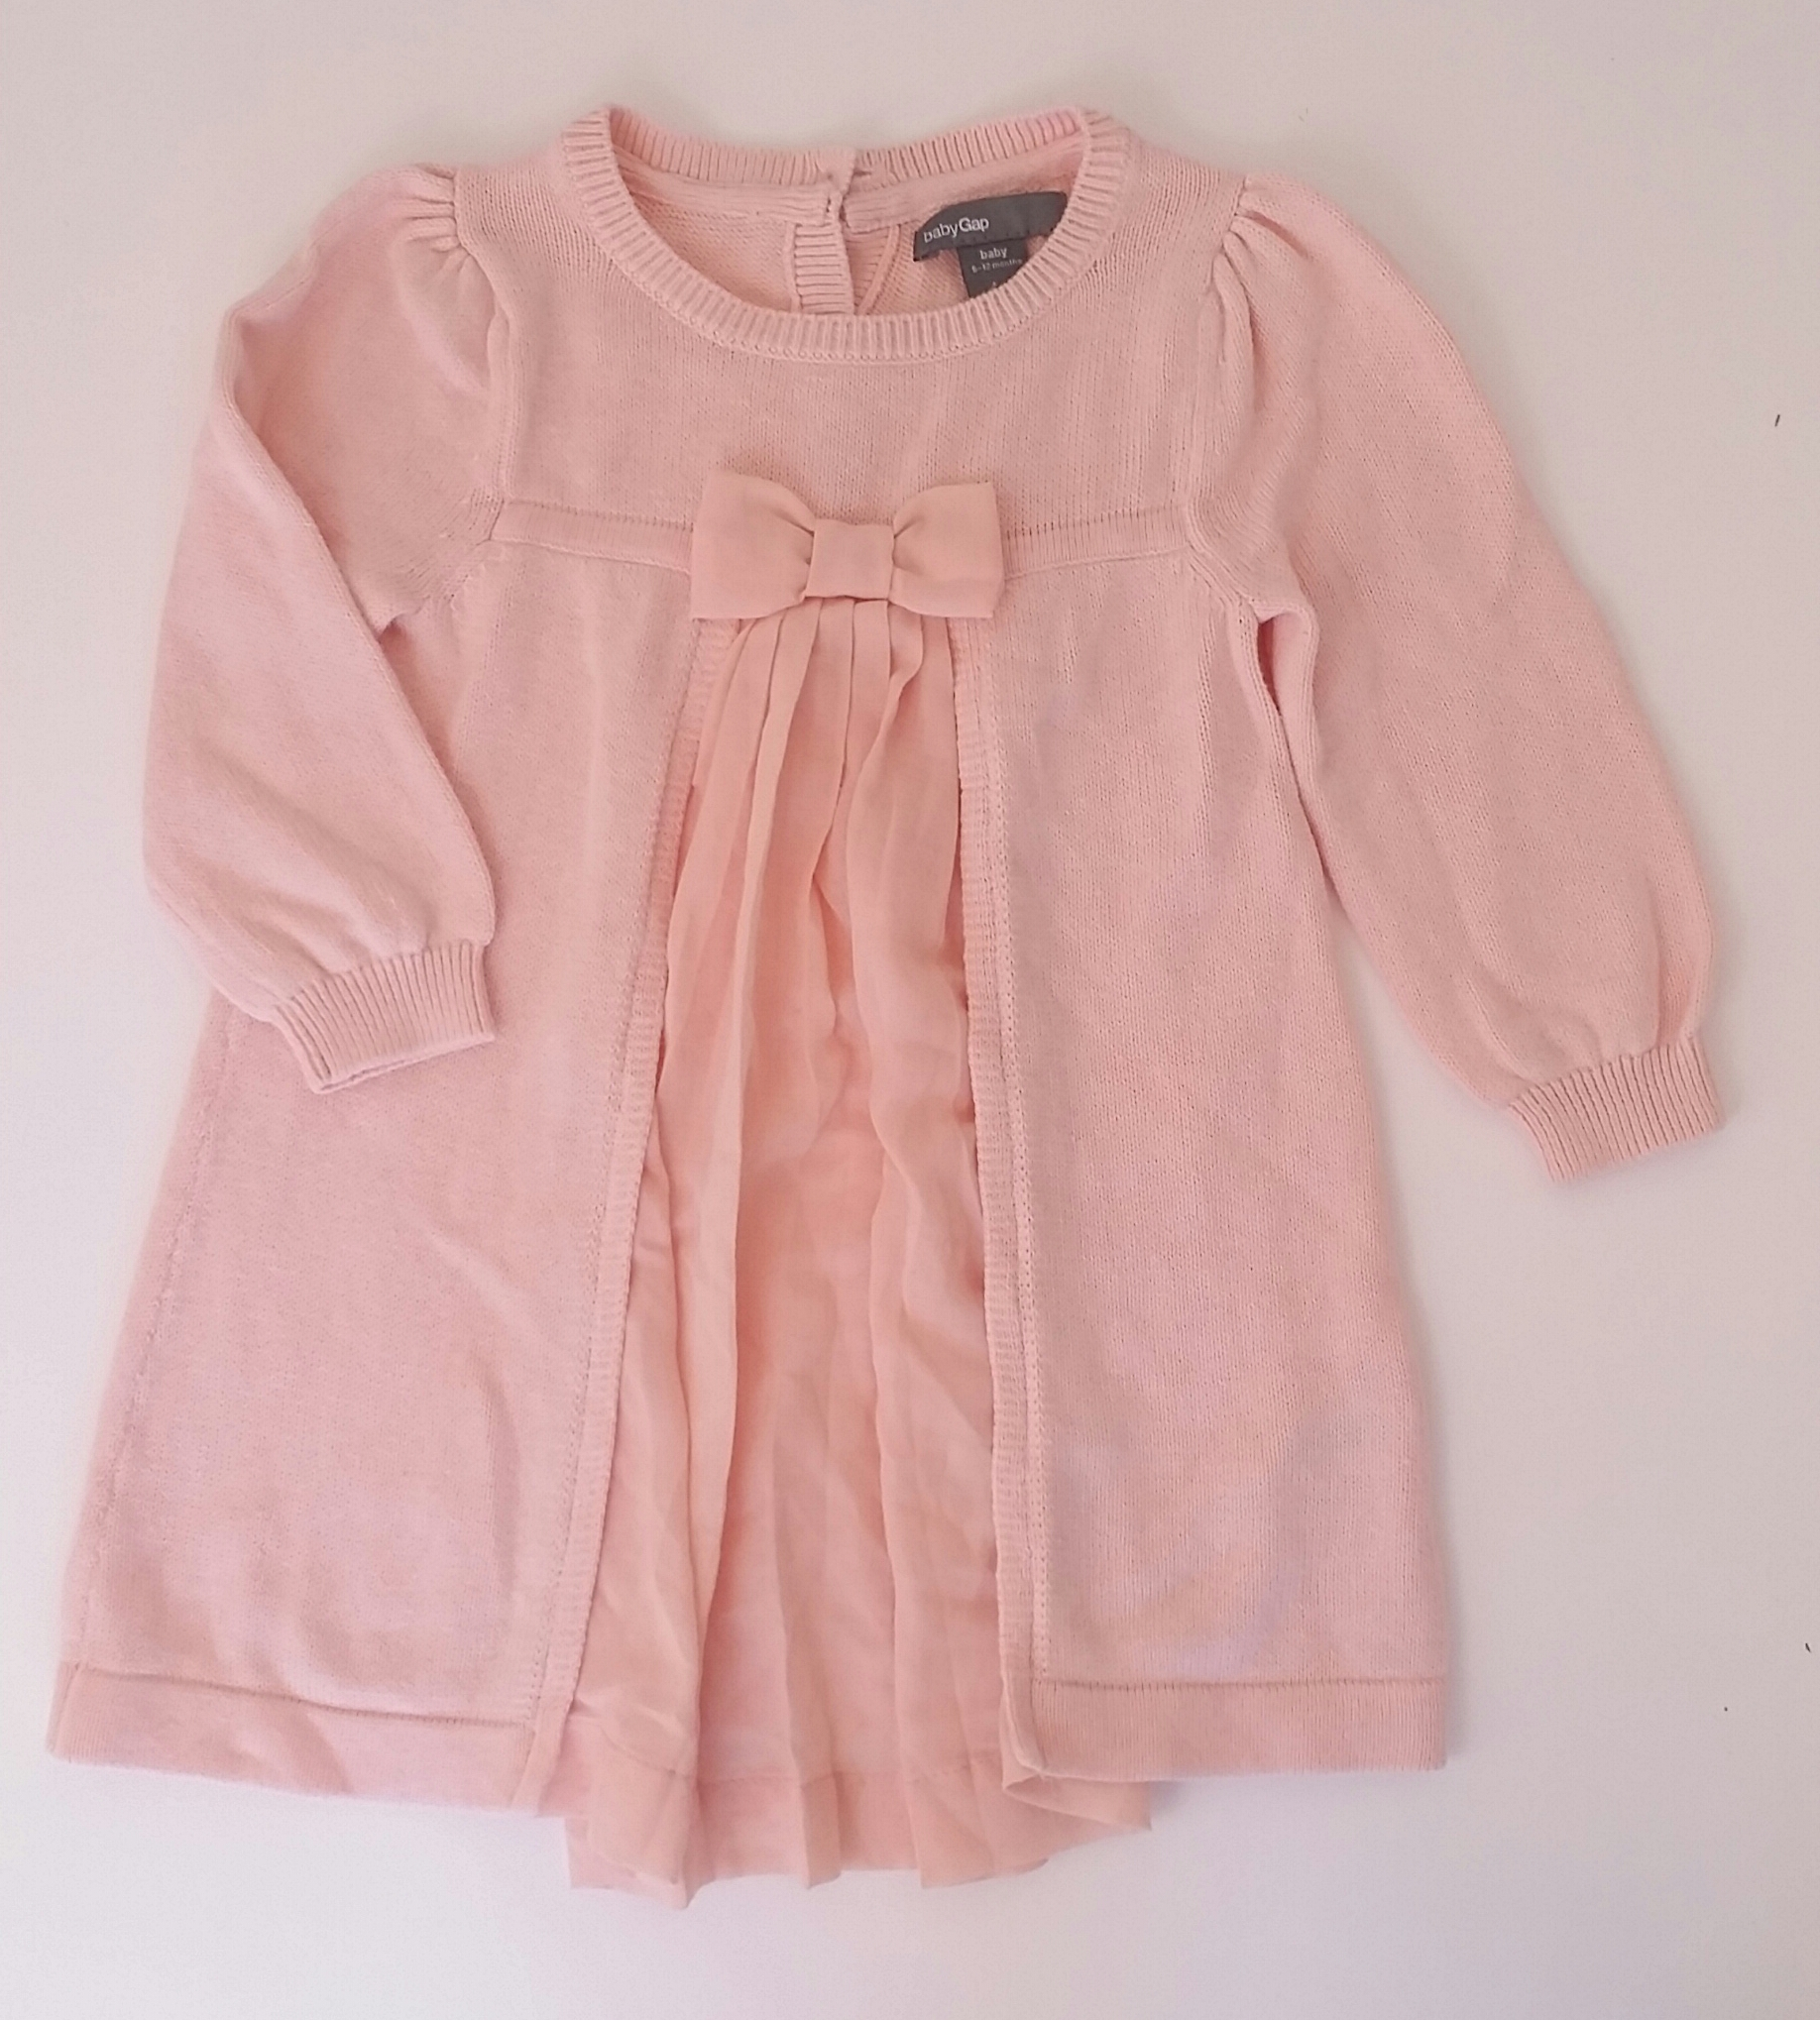 Gap-6-12-MONTHS-Sweater-Dress_2150322A.jpg